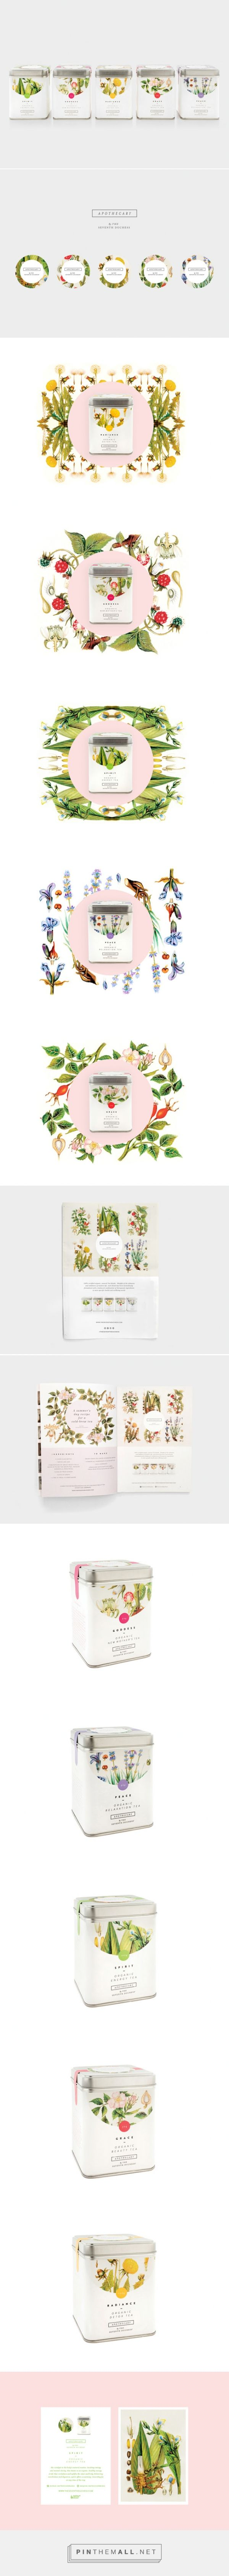 Lovely Apothecary Tea Packaging by Nude Design Studio for Seventh Dutchess curated by Packaging Diva PD Herbal and organic teas and tisanes created via http://www.packagingoftheworld.com/2015/01/apothecary-tea-packaging.html